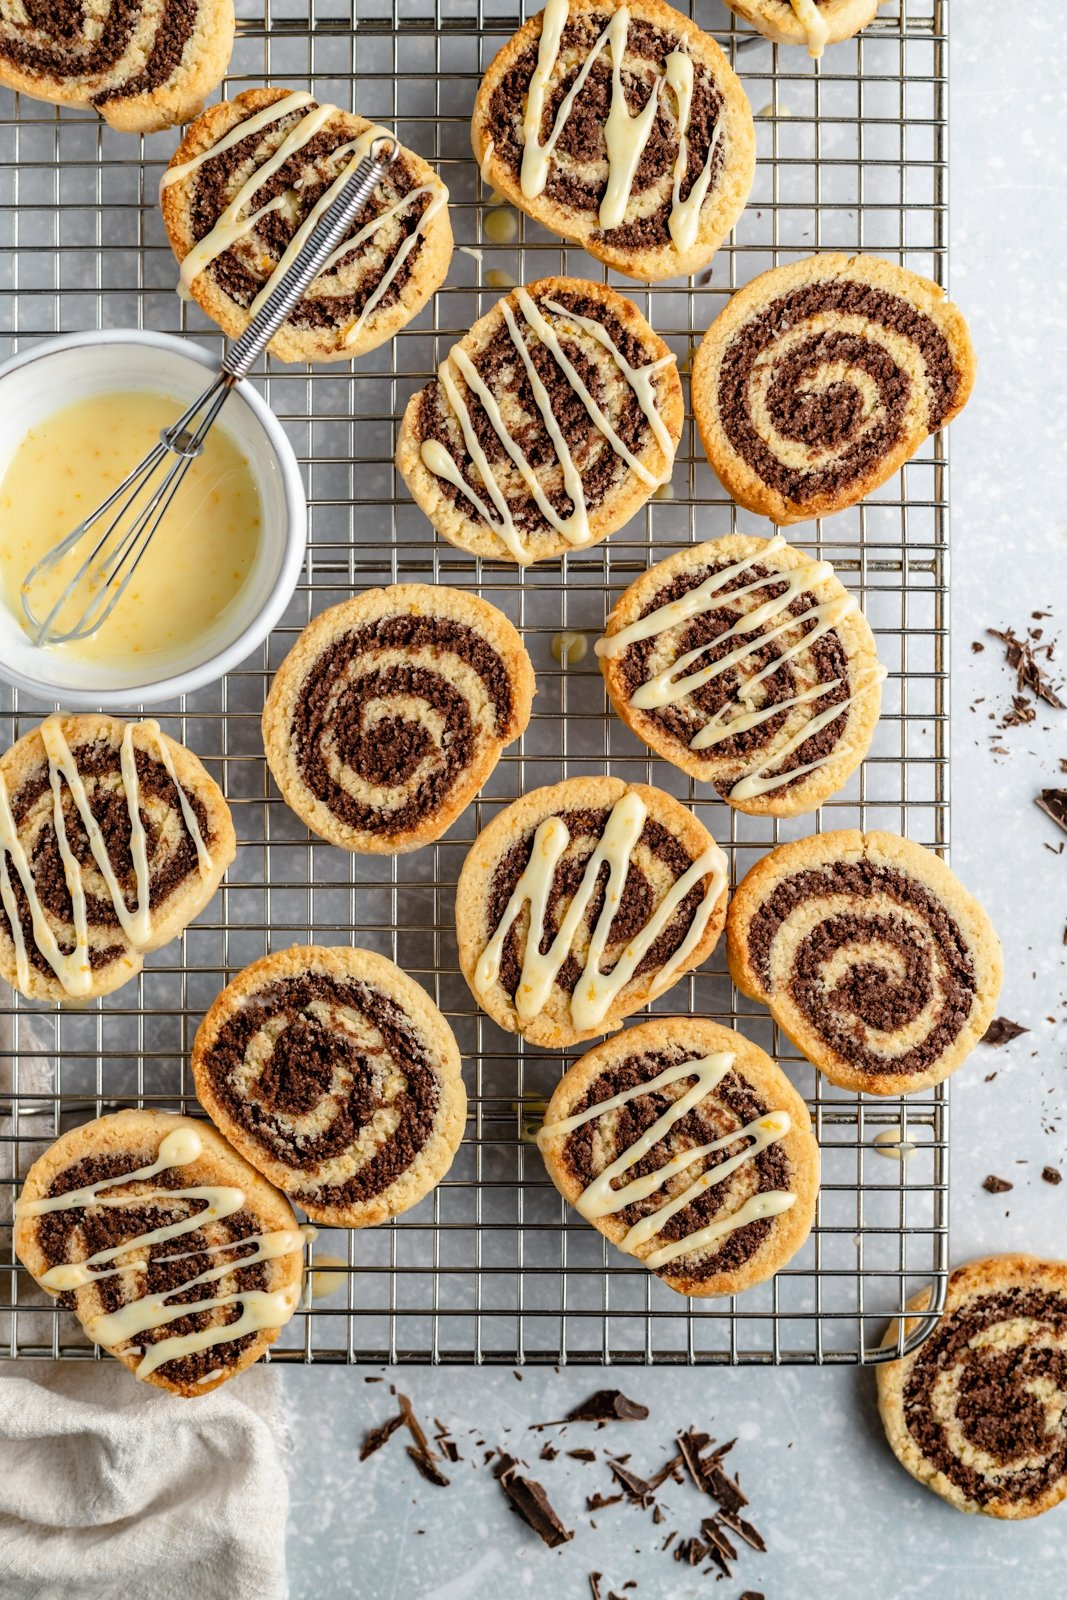 grain free orange chocolate pinwheels on a wire rack